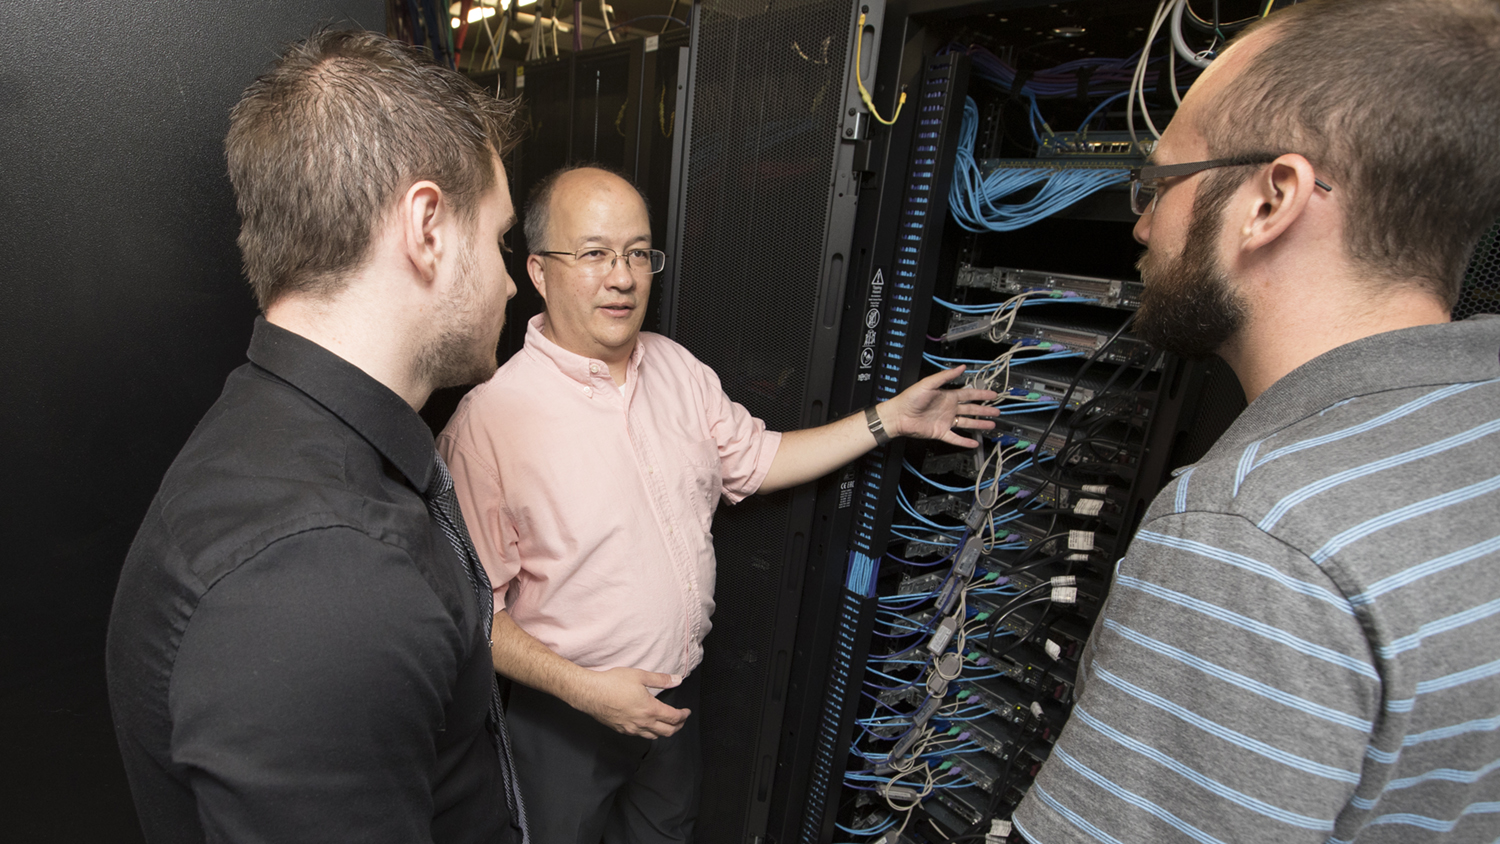 Professionals work with University servers